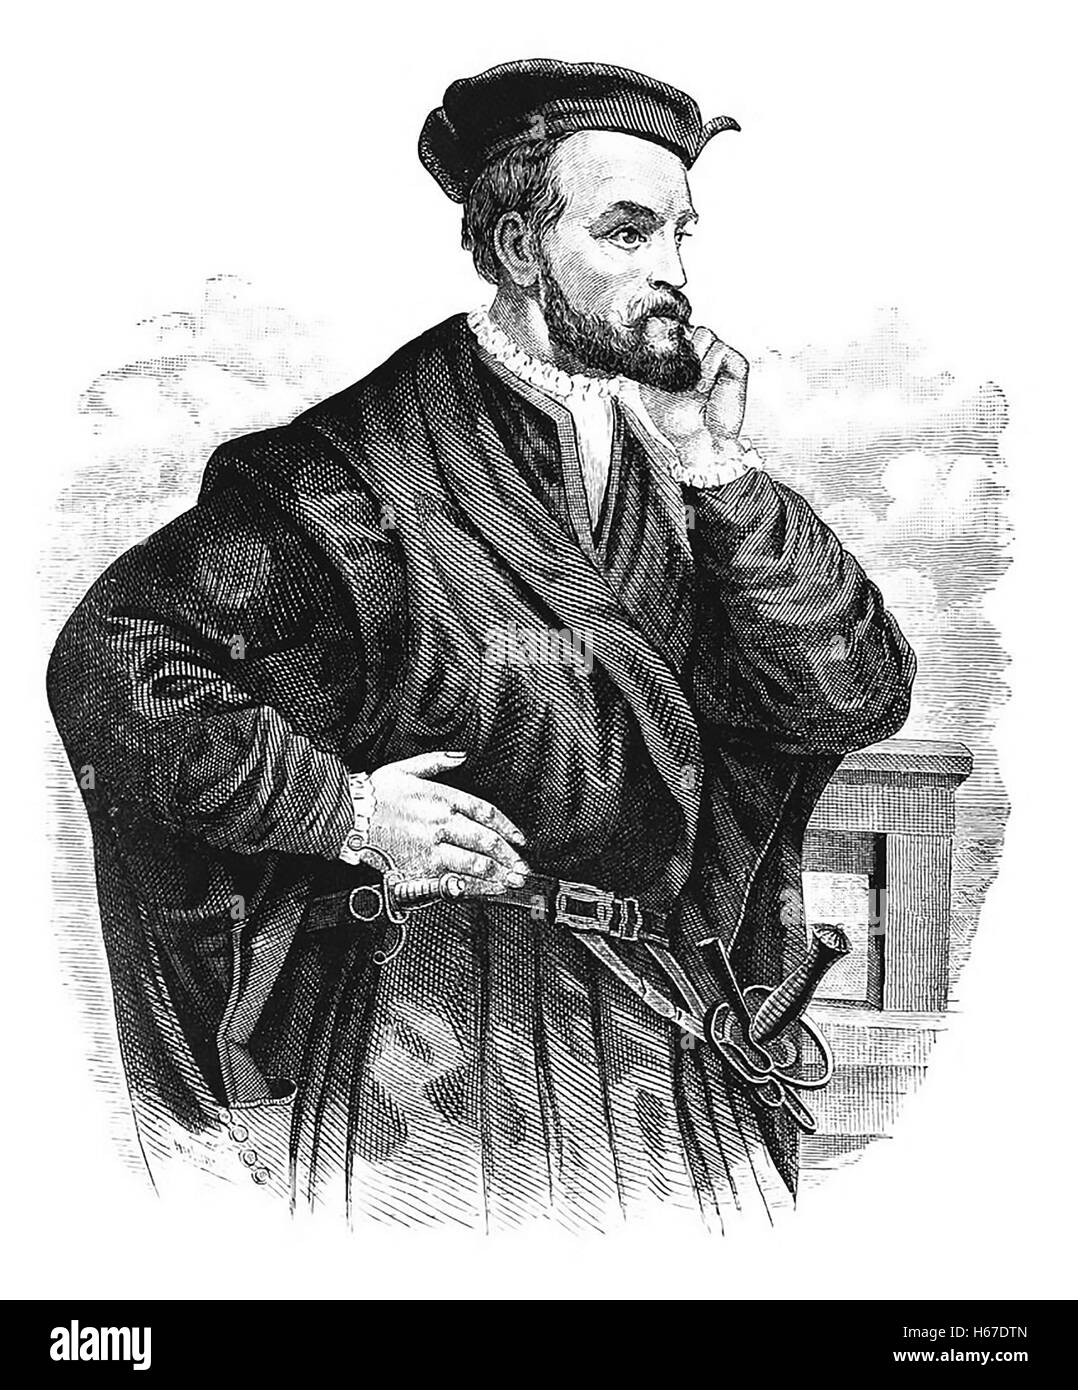 Jacques Cartier French Explorer Engraving